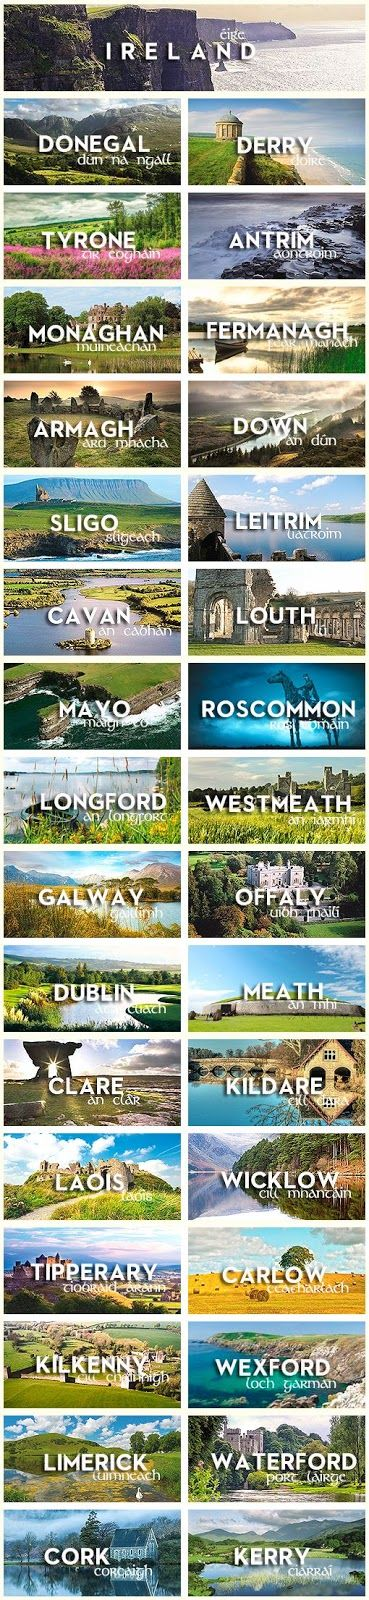 32 Counties of Ireland. Home to craggy cliffs and windswept valleys, to ancient castles and modern cities and roads that unfurl like ribbons, Ireland is uncommonly rich with both natural wonders and manmade attractions.